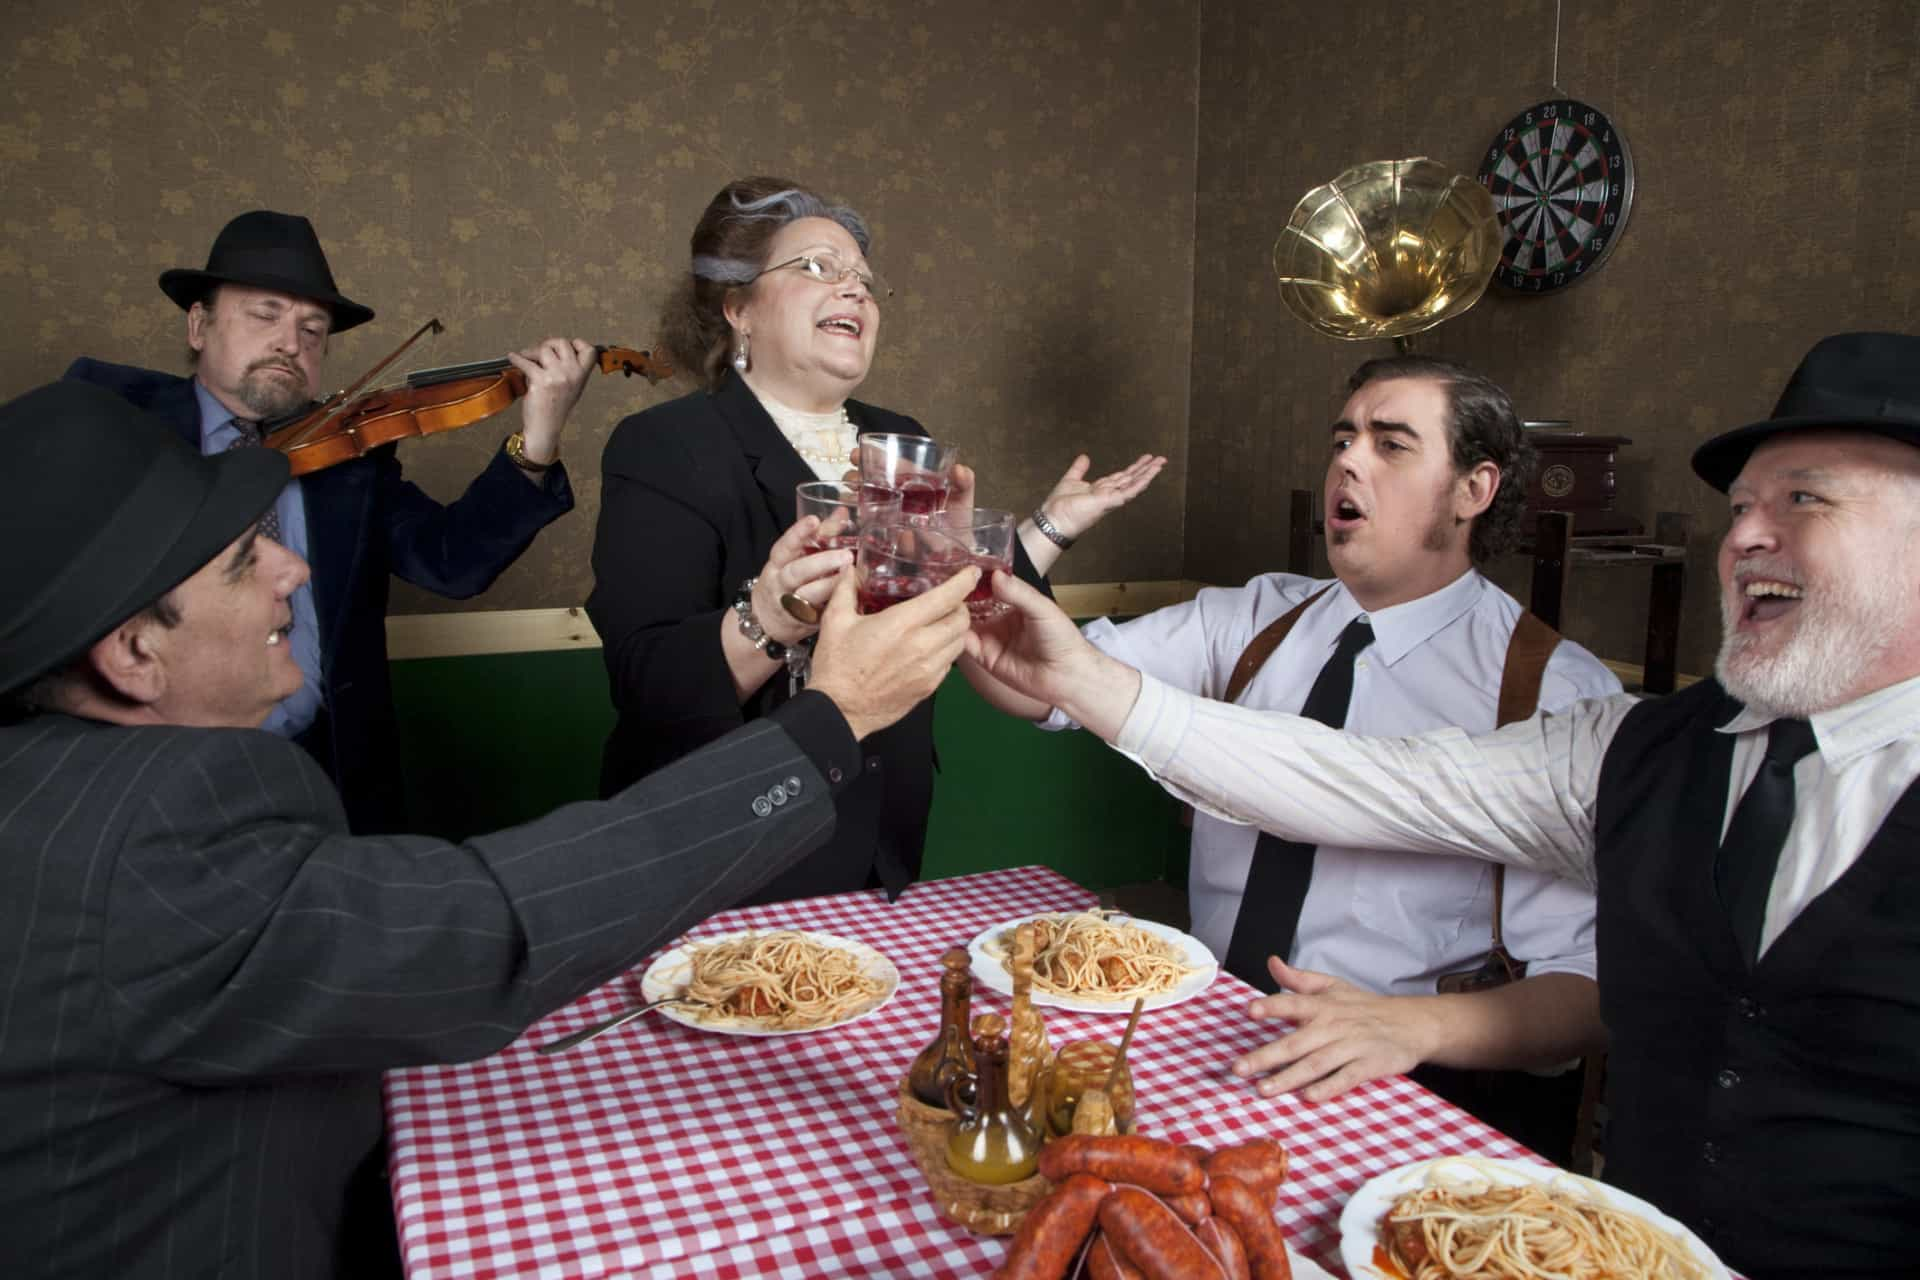 Pizza, pasta, and other common Italian stereotypes